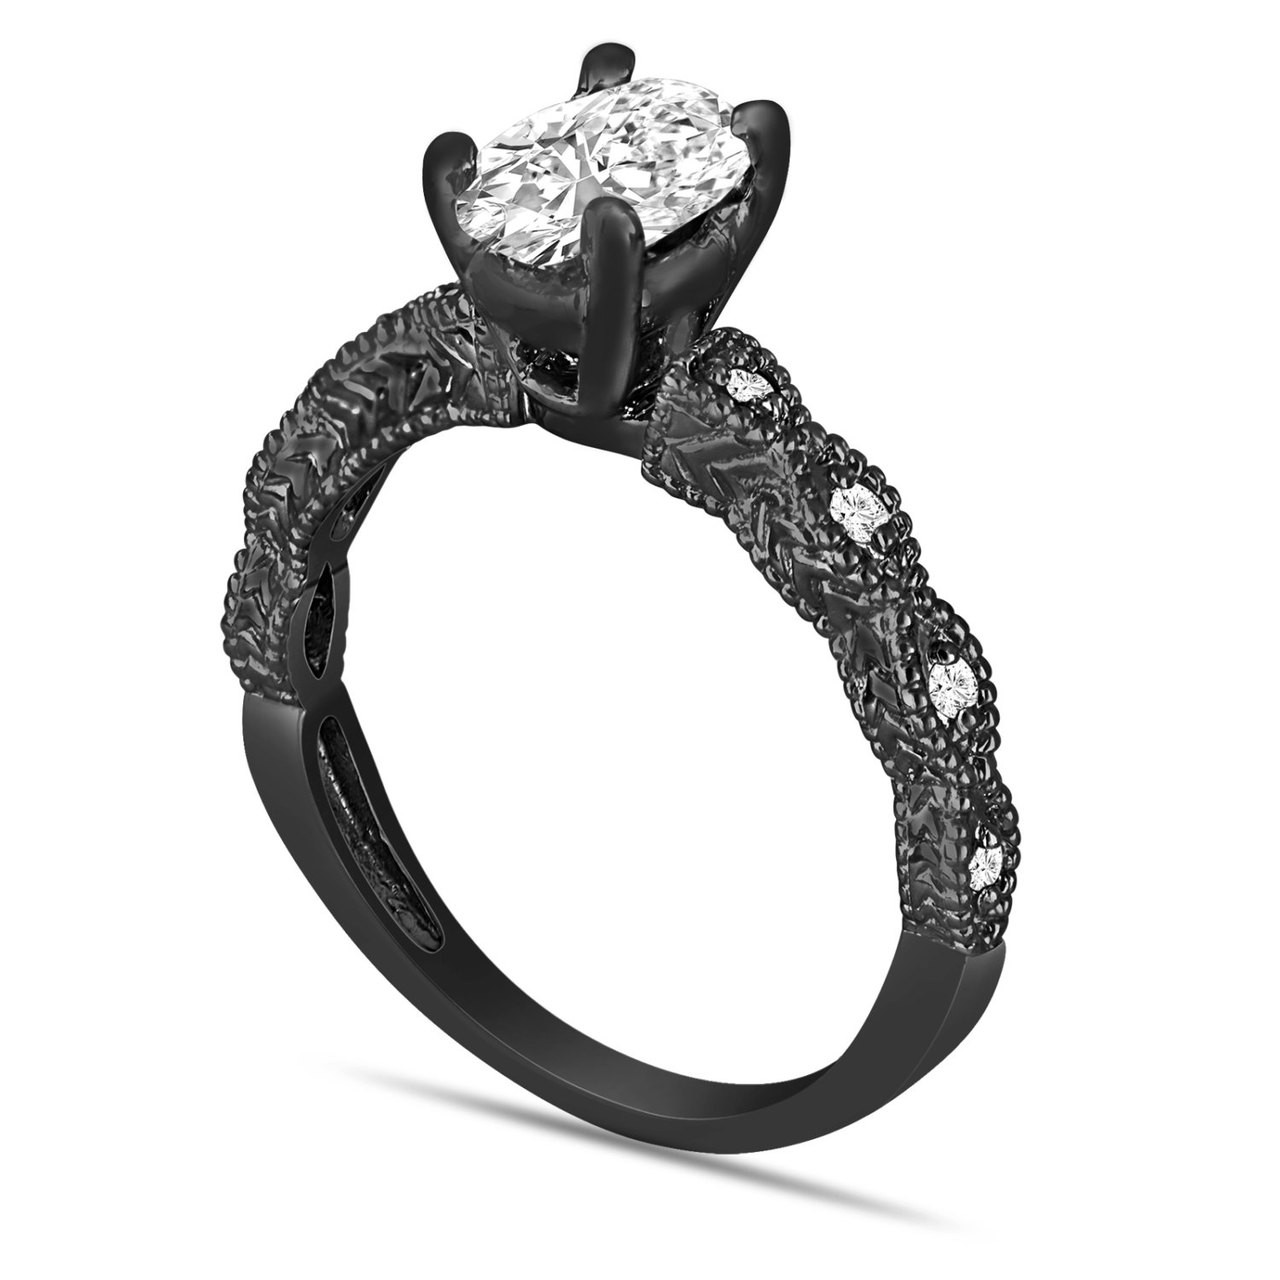 Oval Diamond Engagement Ring Egl Certified 1 08 Carat Vintage Style 14K Black